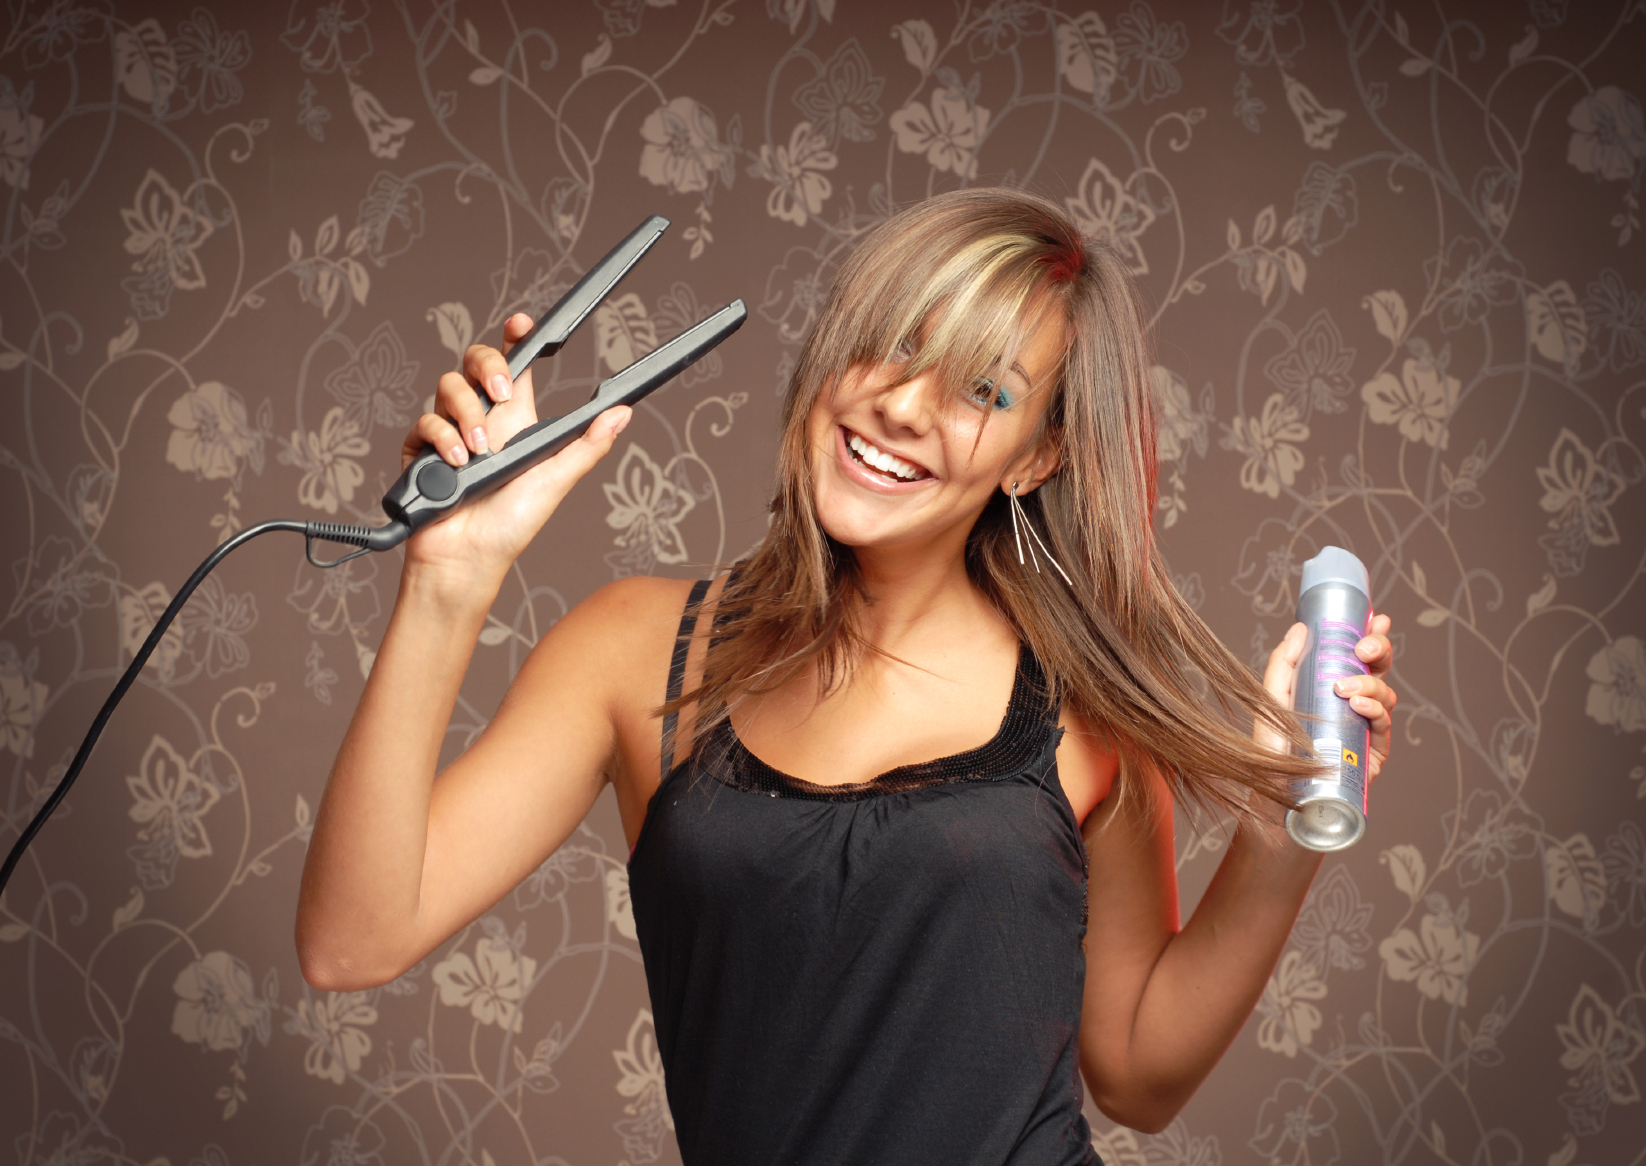 styling your hair at home how to salon styled hair at home salon price 9178